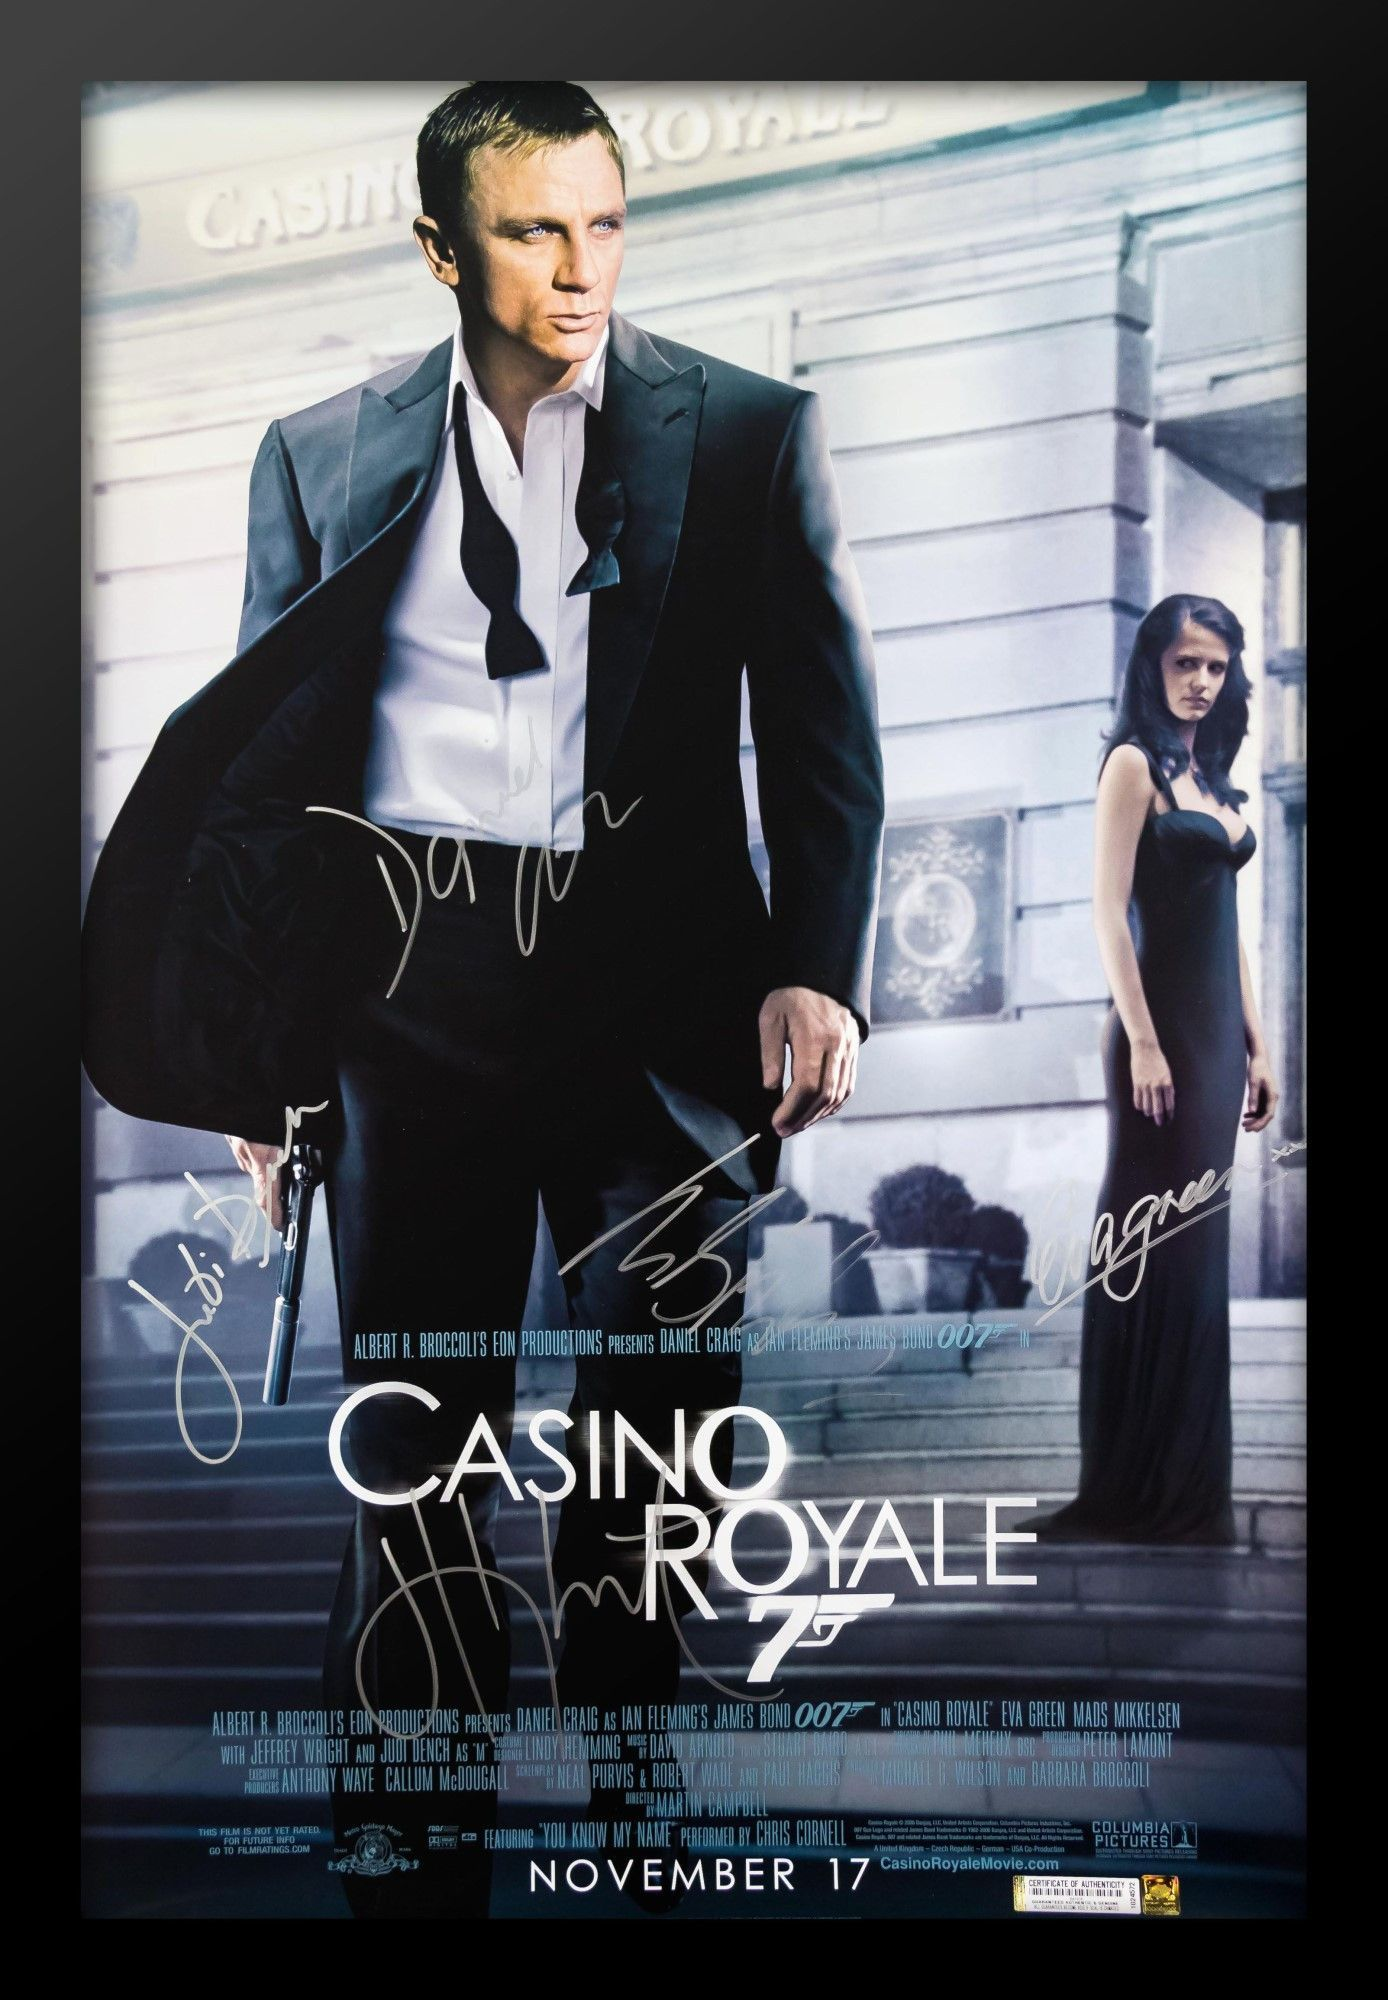 James Bond Casino Royale Cast Signed Movie Poster Wood Framed With